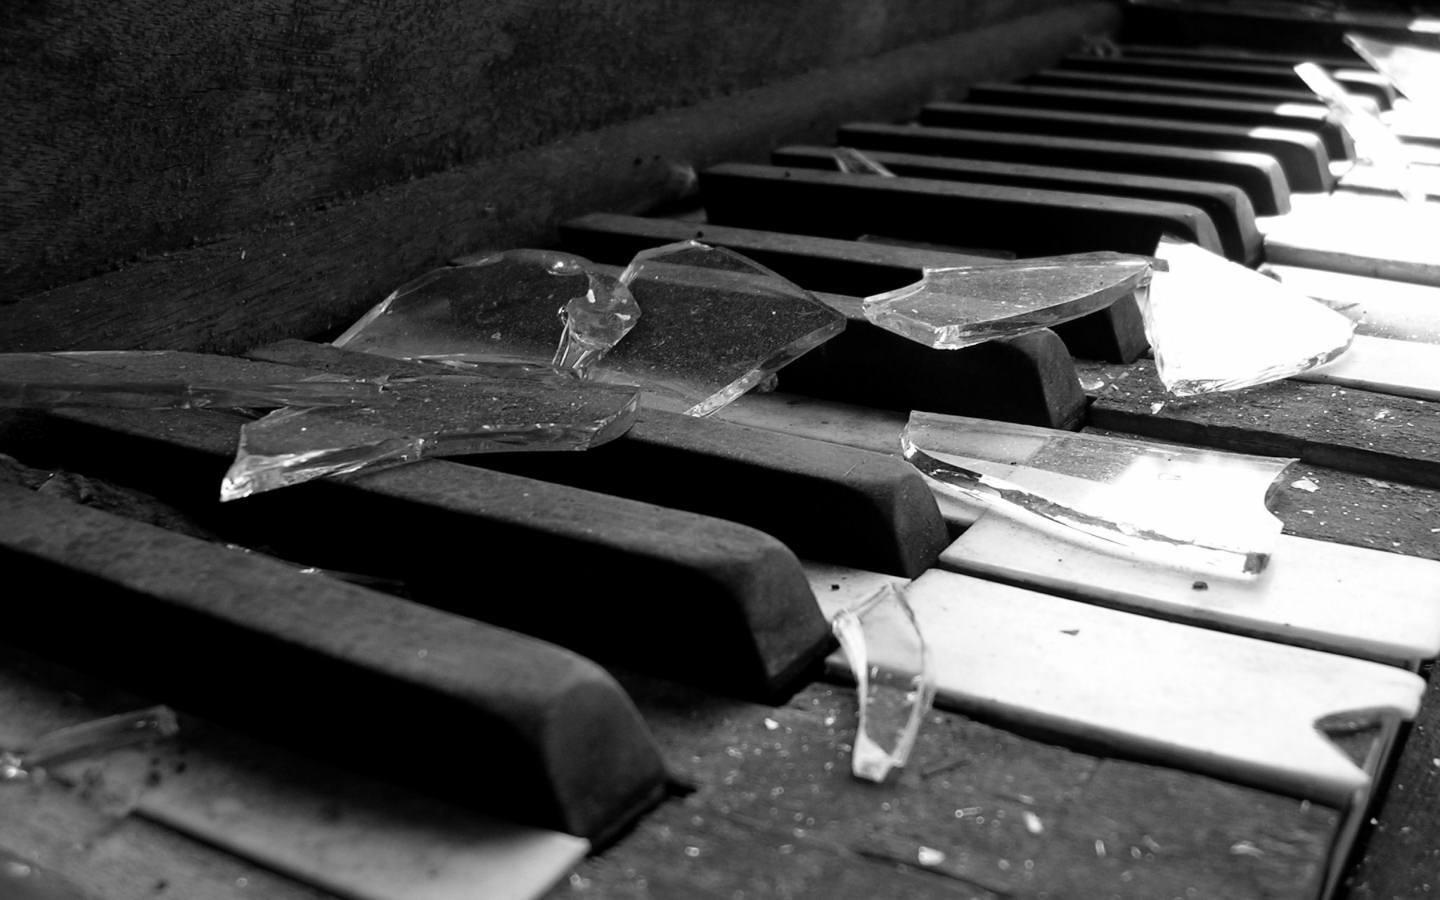 Wallpapers For > Piano Wallpaper Widescreen